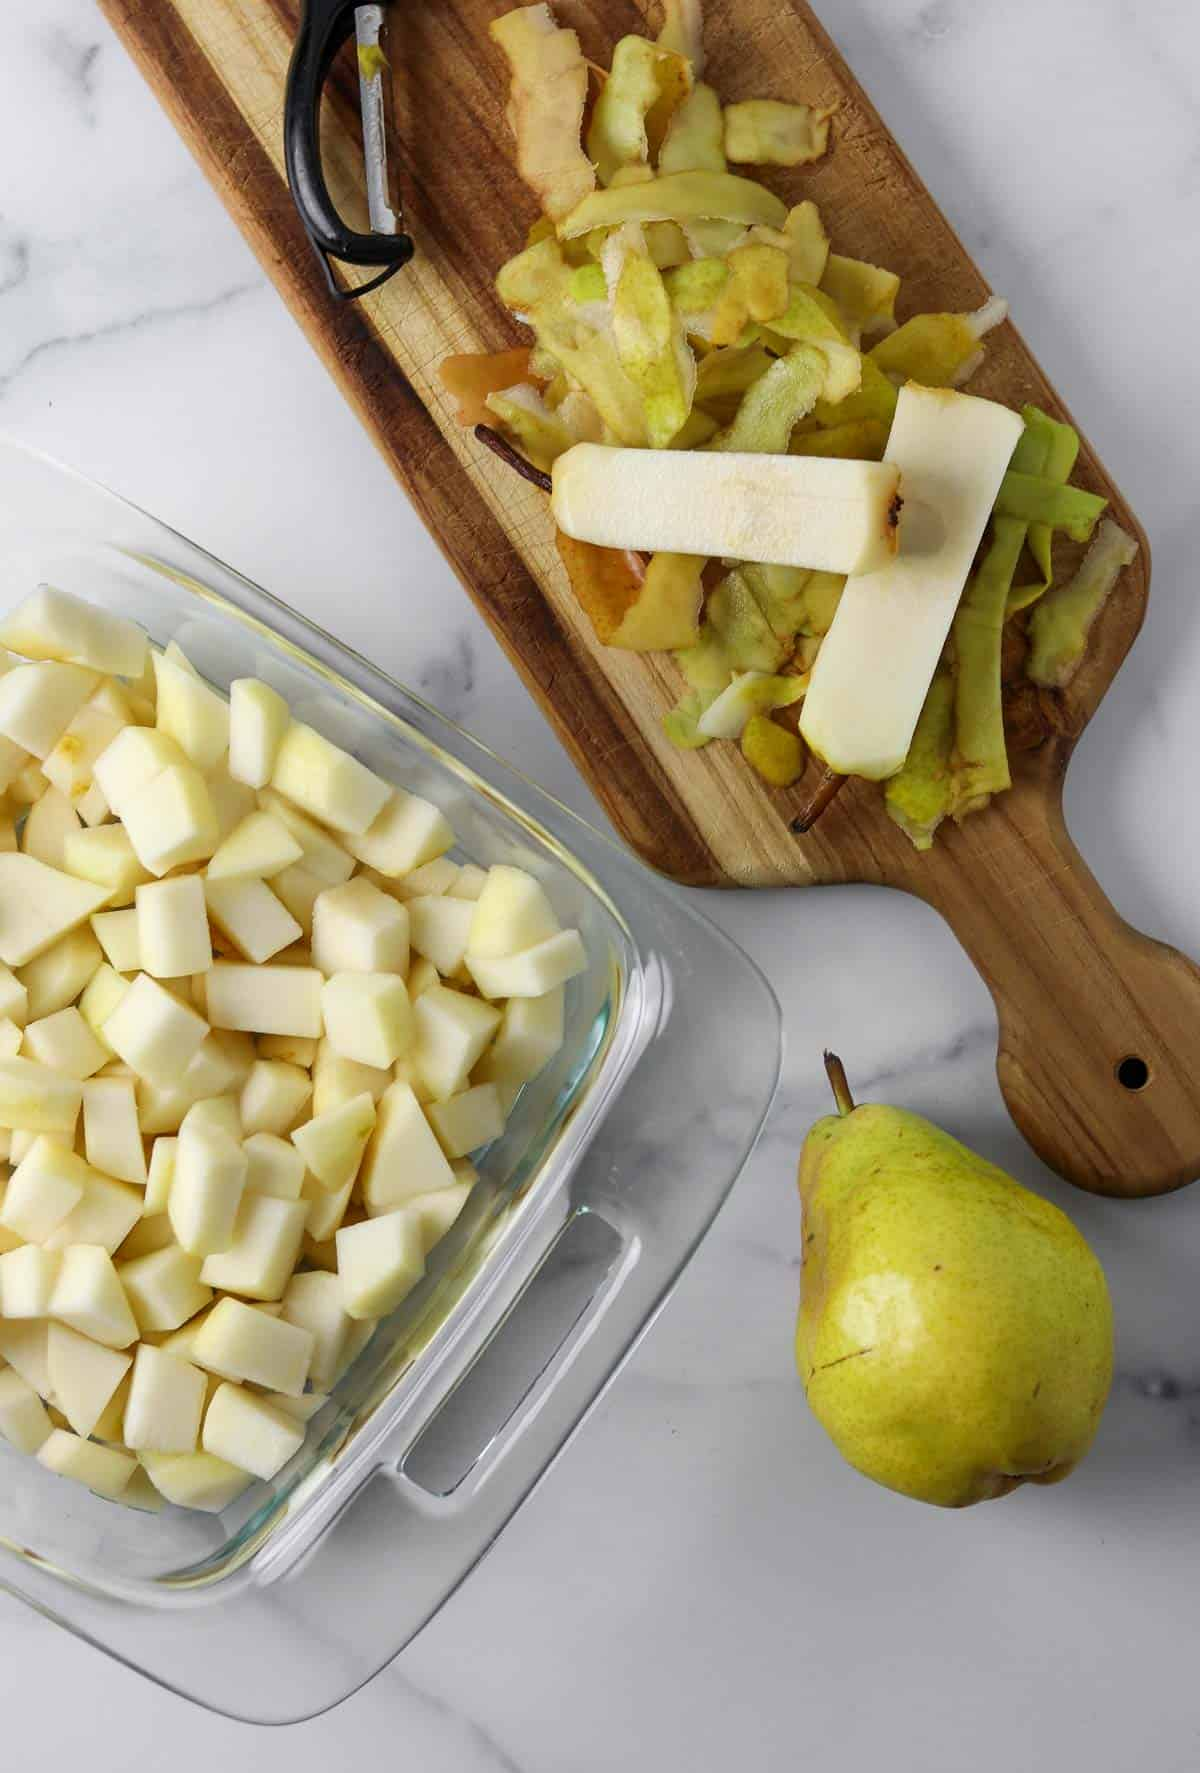 Cubed pears in a glass dish next to peels and cores and a whole pear.